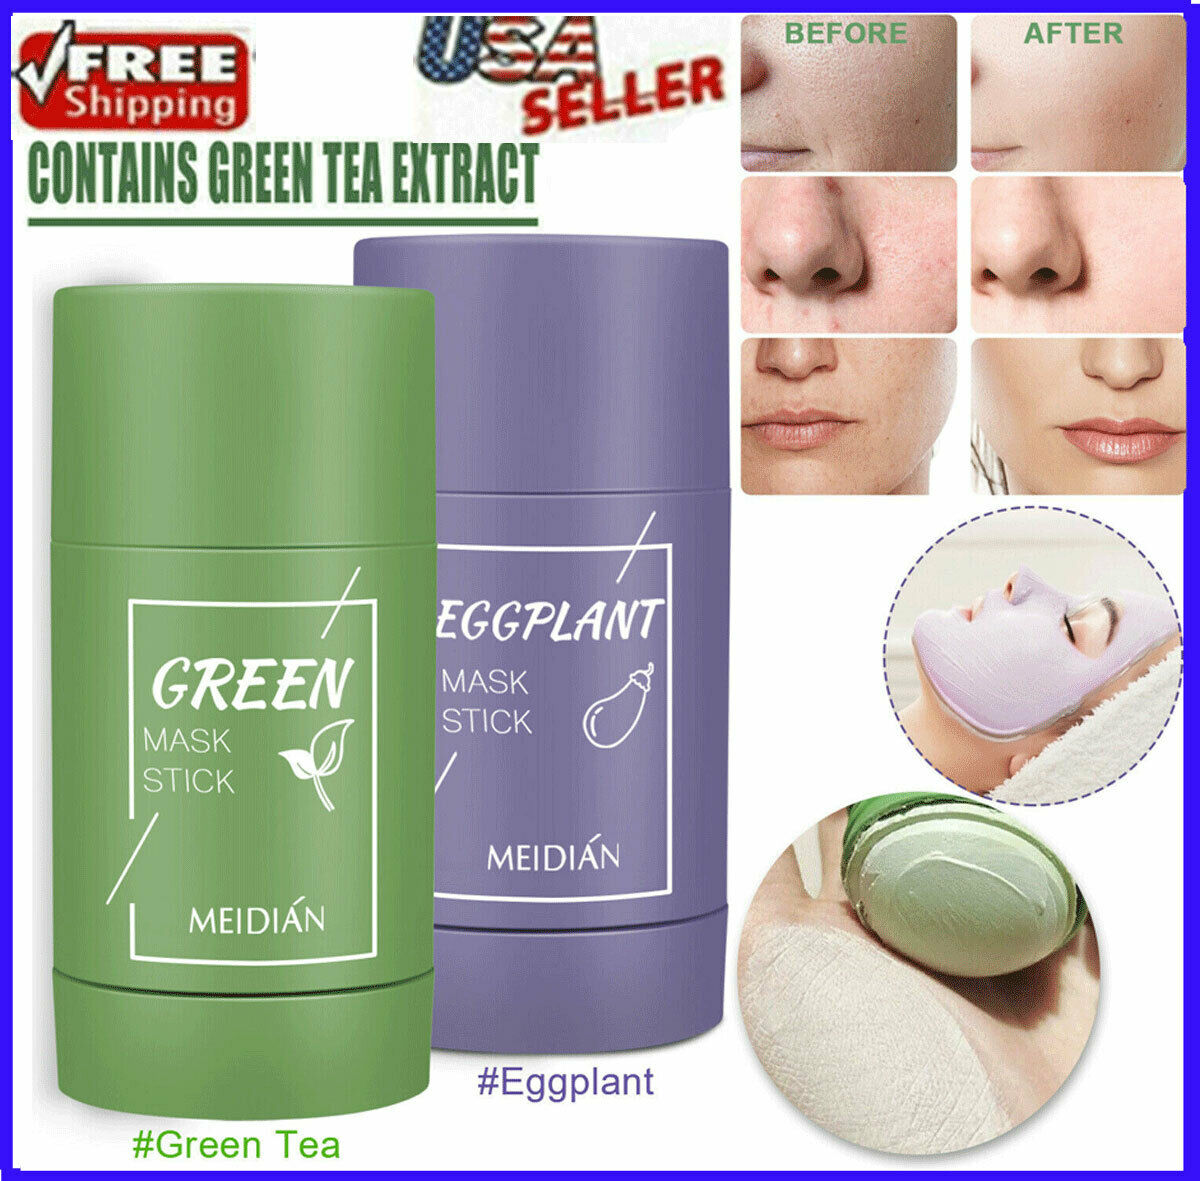 Green Tea Clay Mask Stick Purifying Facial Deep Cleansing Blackhead Acne Remover Health & Beauty